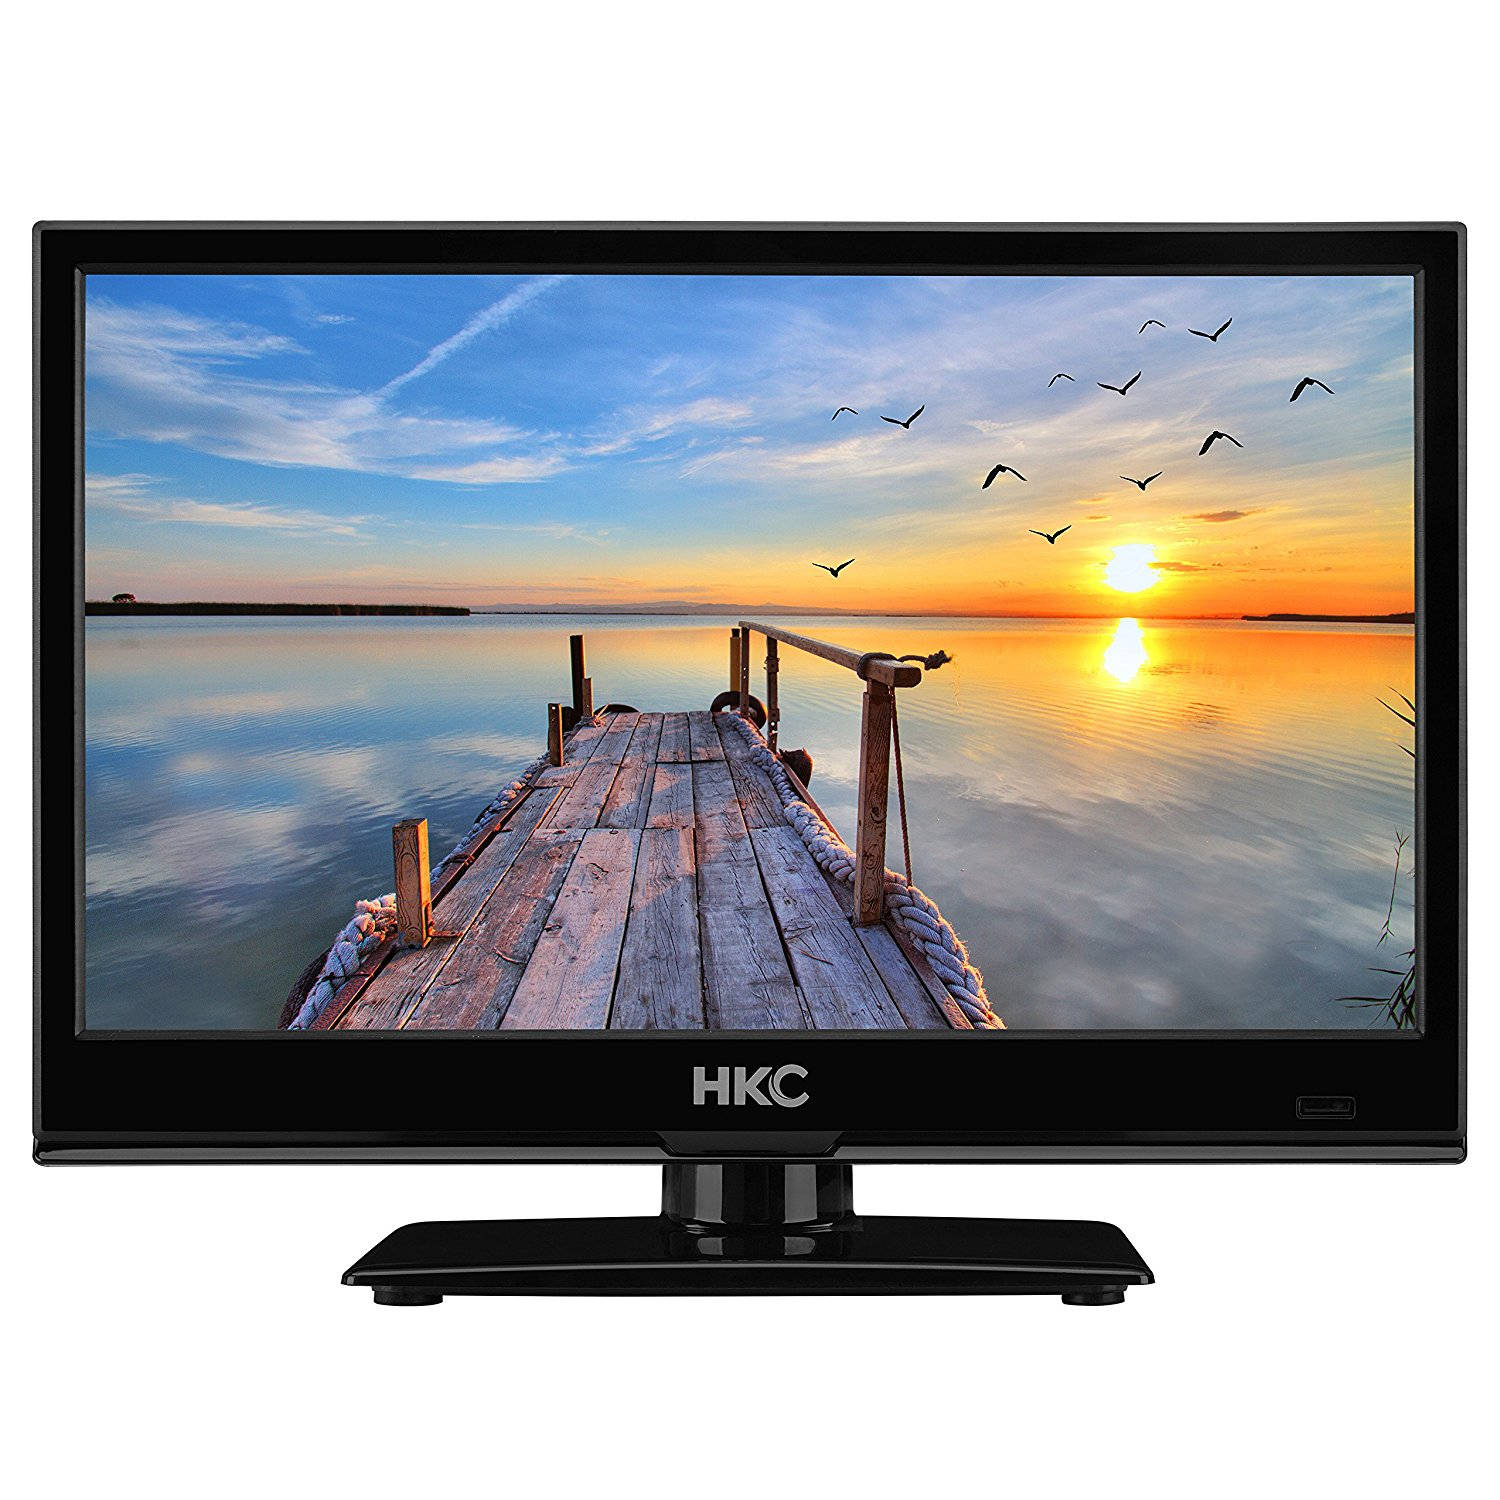 HKC 16M4 15,6 inch Full HD TV